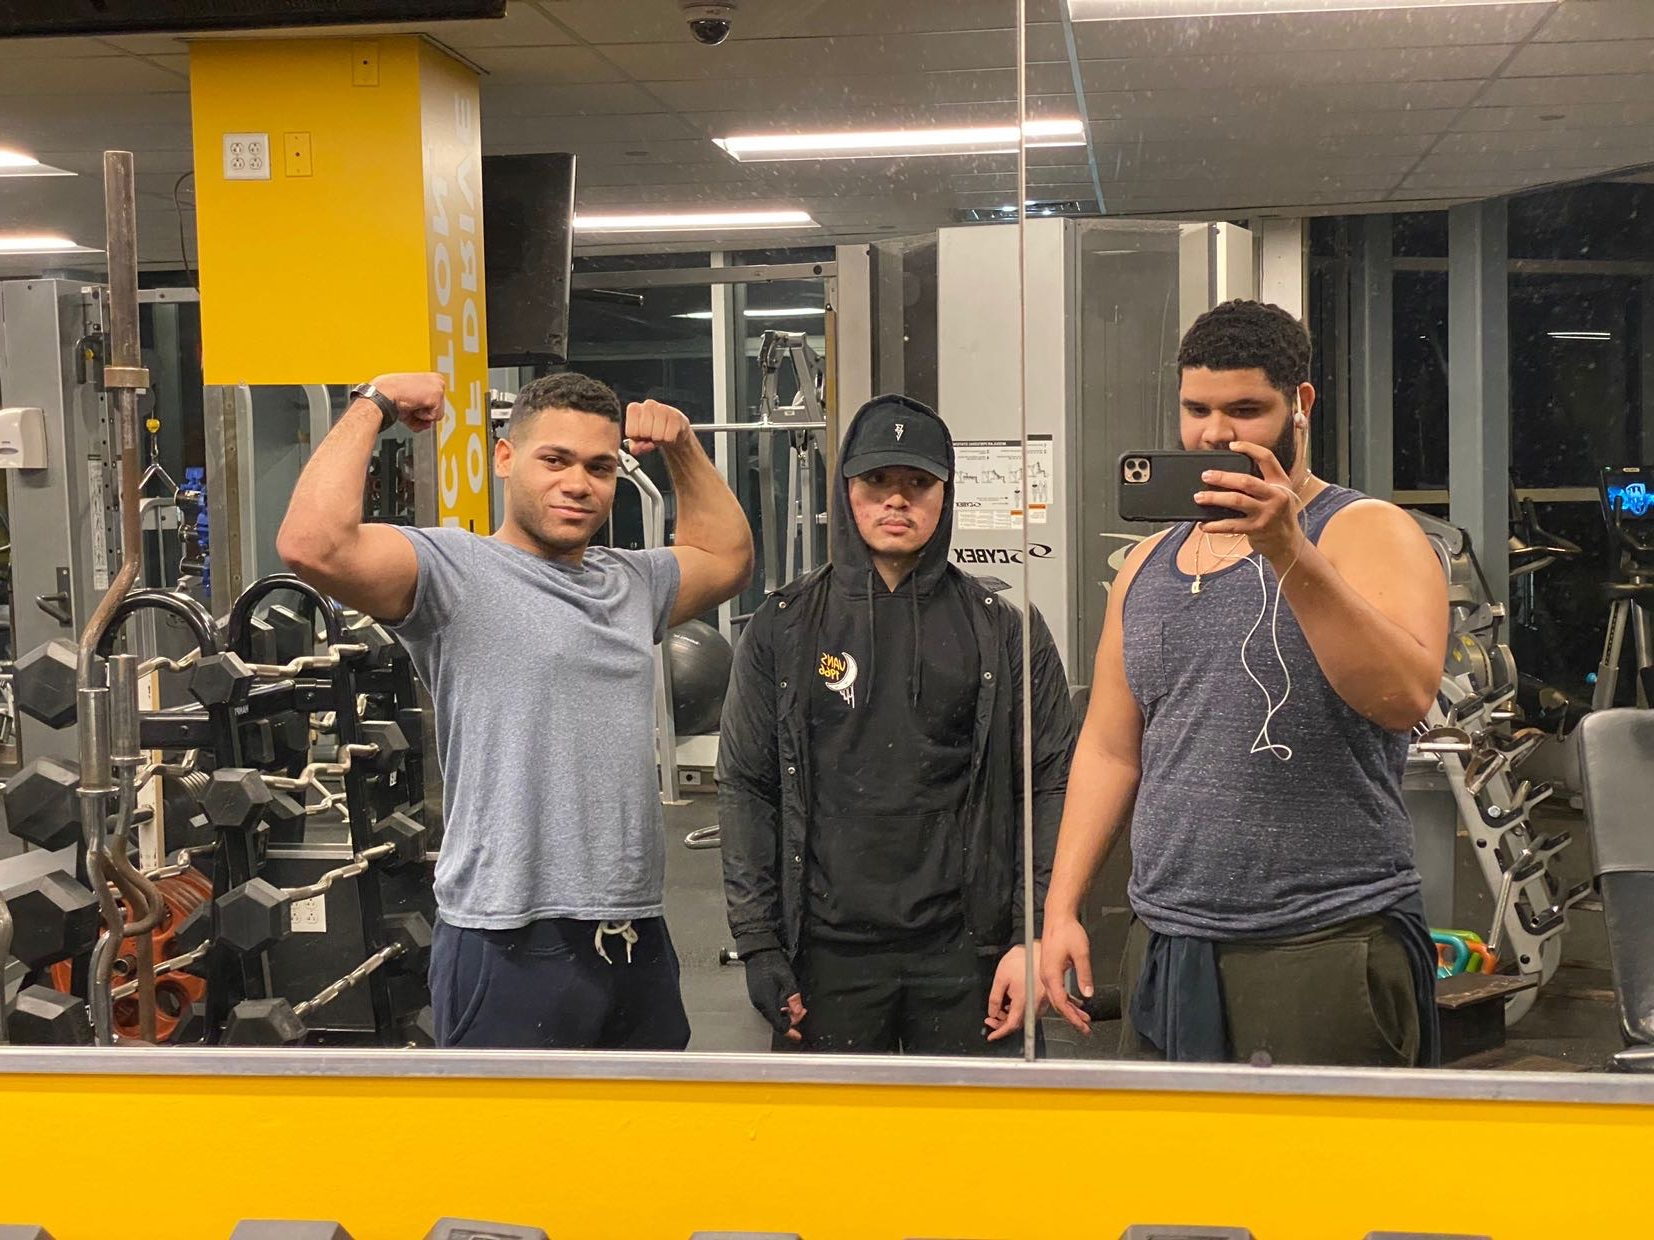 Carlos Pujols with friends in the Saint Rose fitness center